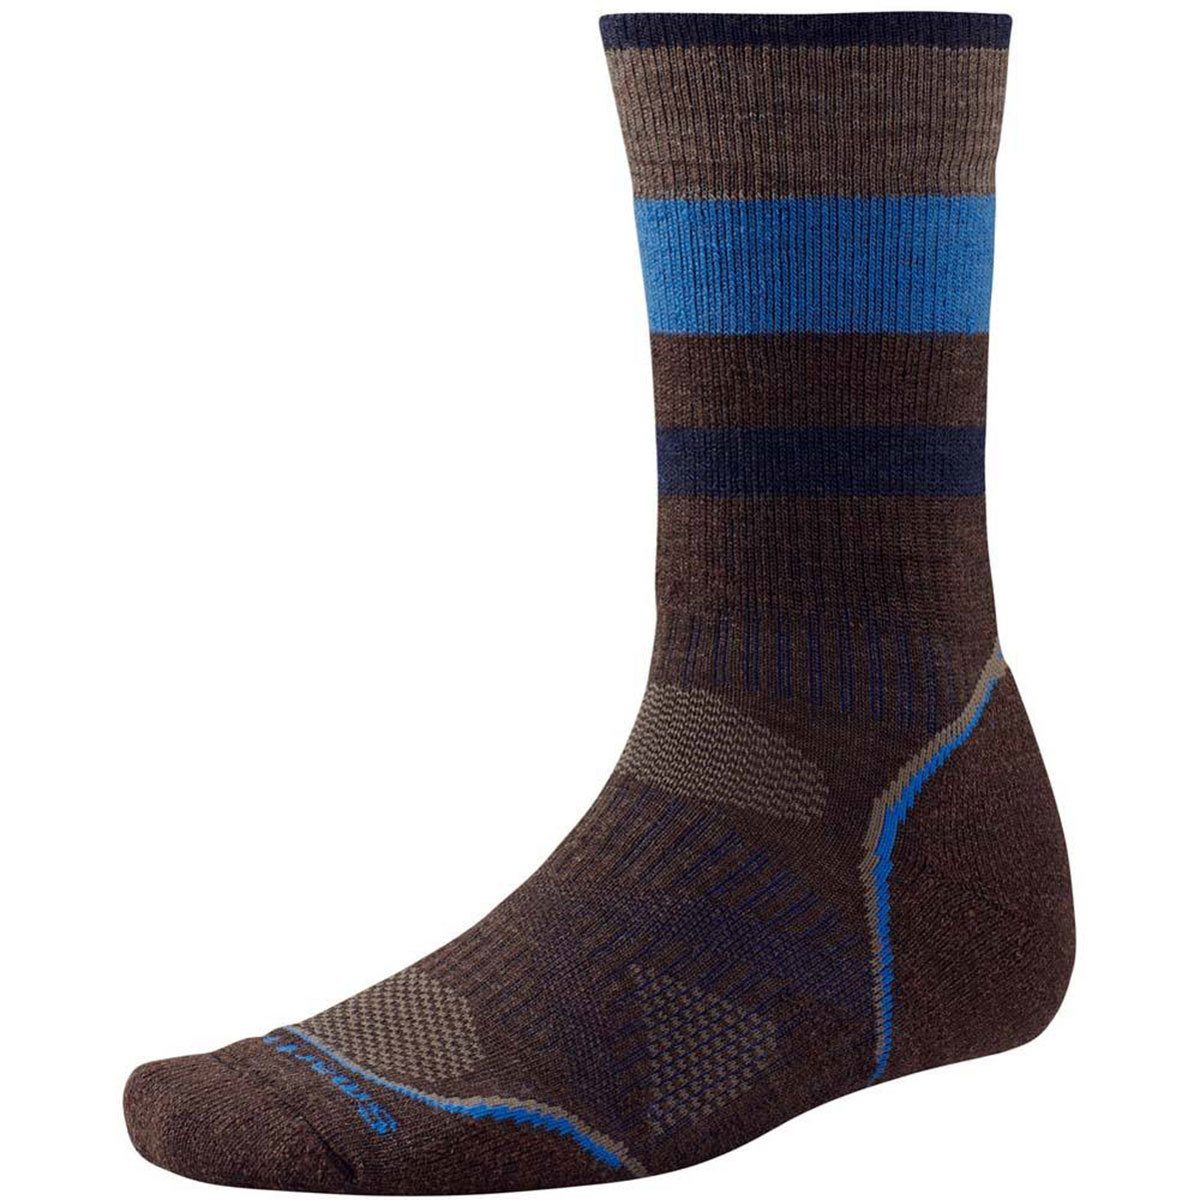 Smartwool Men's Phd V2 Outdoor Medium Crew Socks - Brown, M